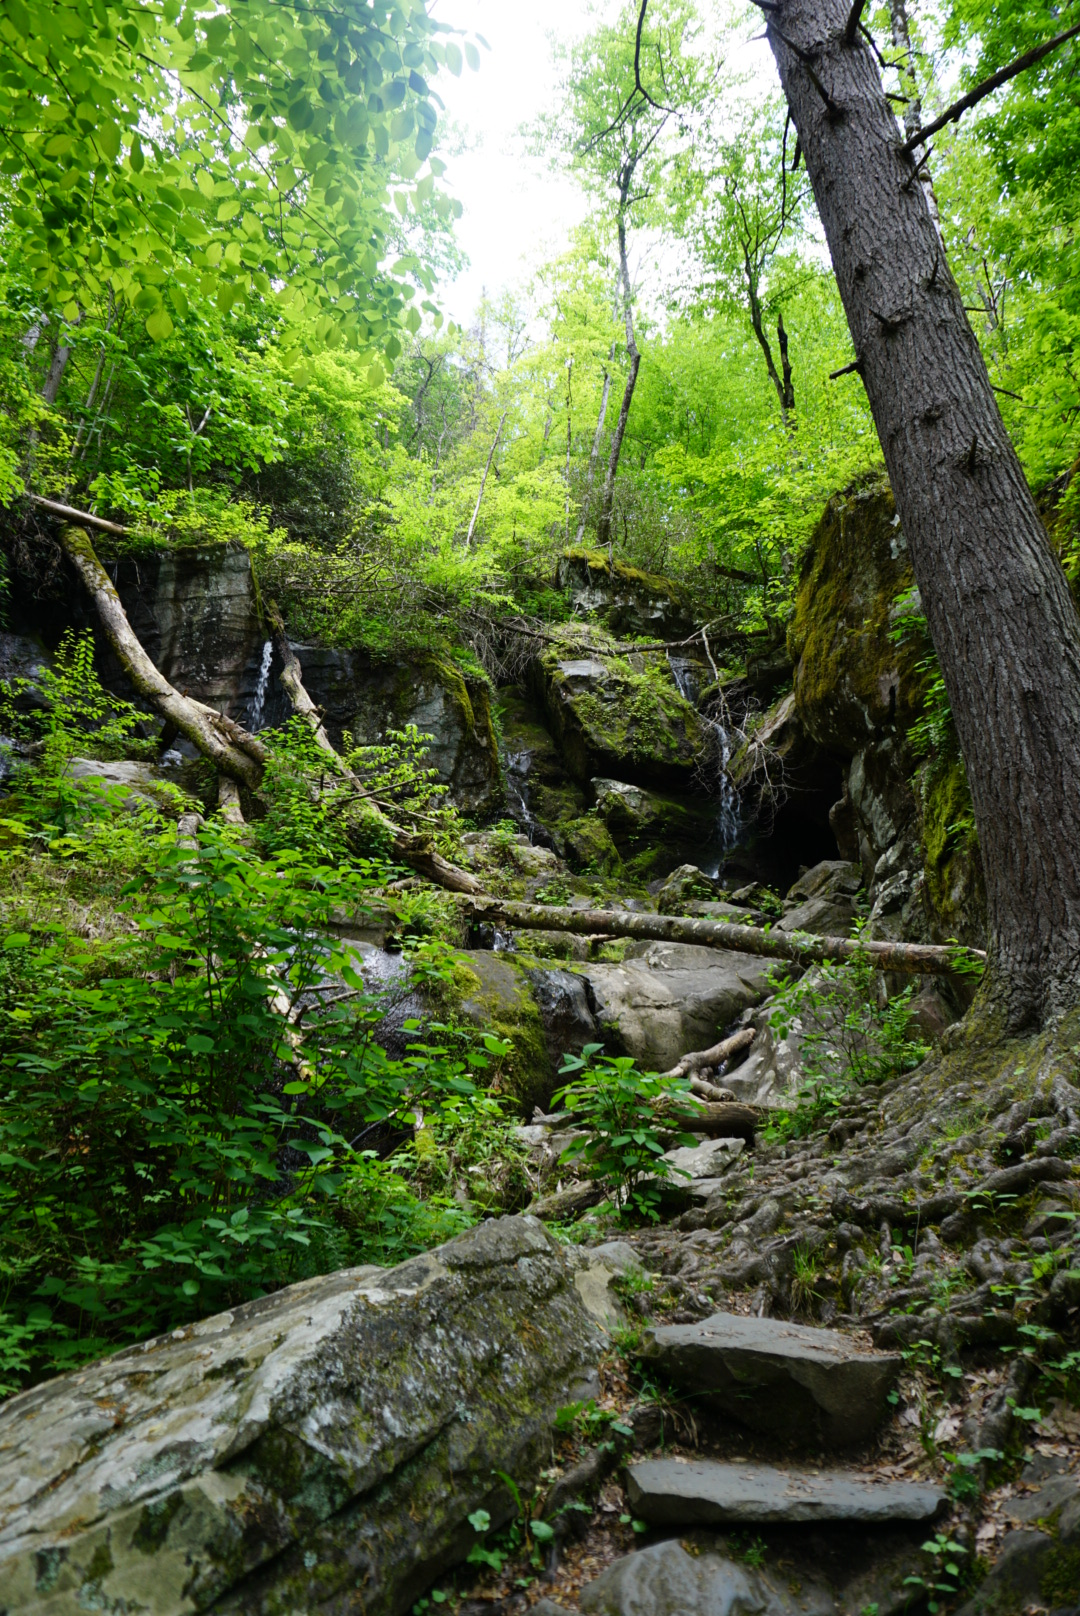 The Place of a Thousand Drips on the Roaring Fork Motor Nature Trail in Tennessee